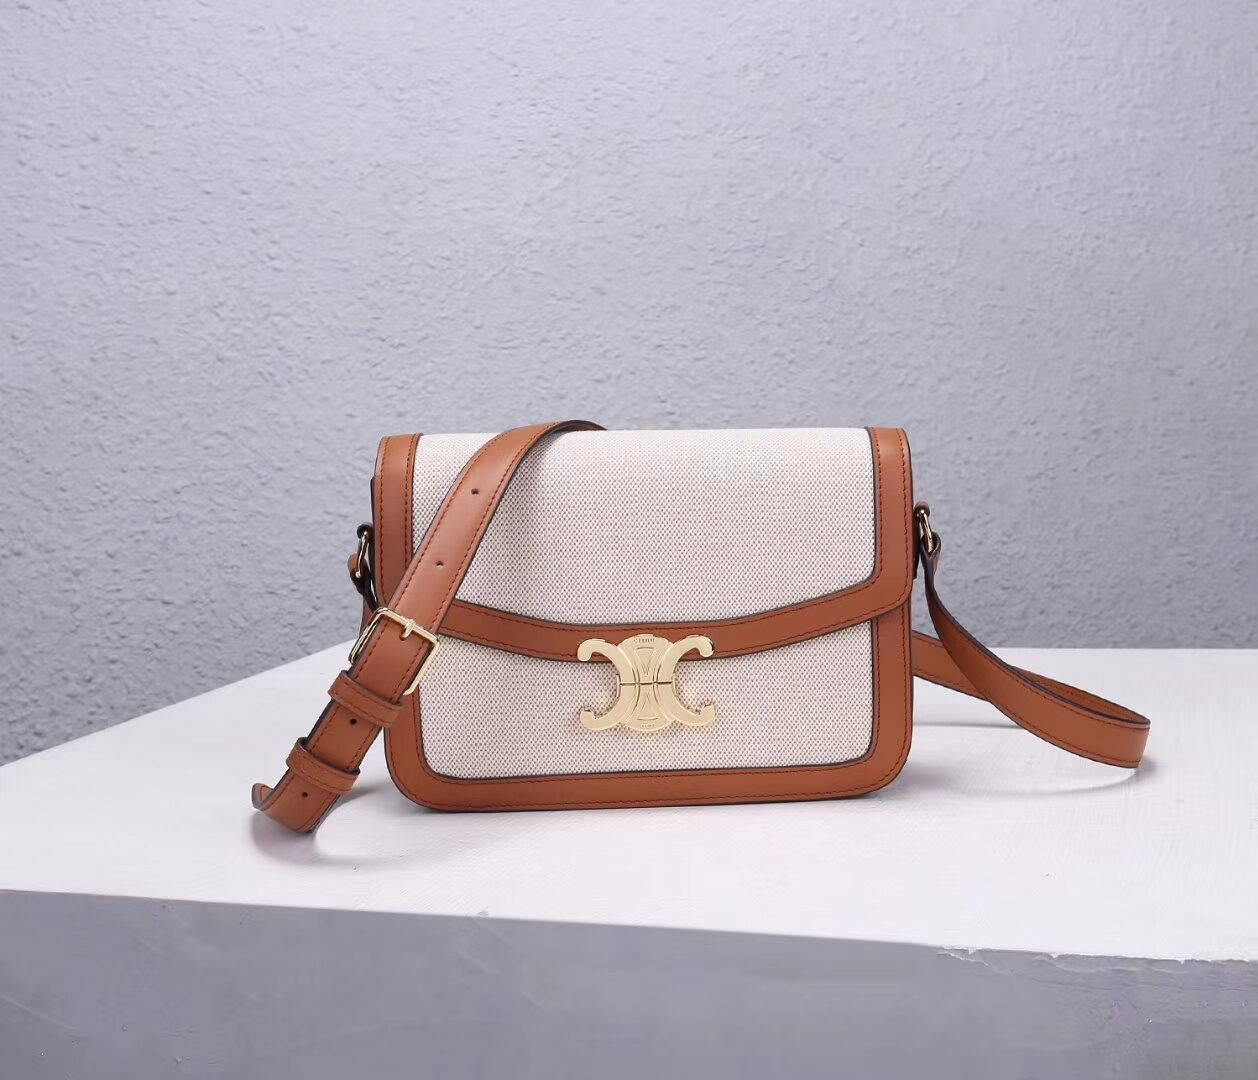 Celine TEEN TRIOMPHE BAG IN TRIOMPHE CANVAS AND CALFSKIN CL87368 white